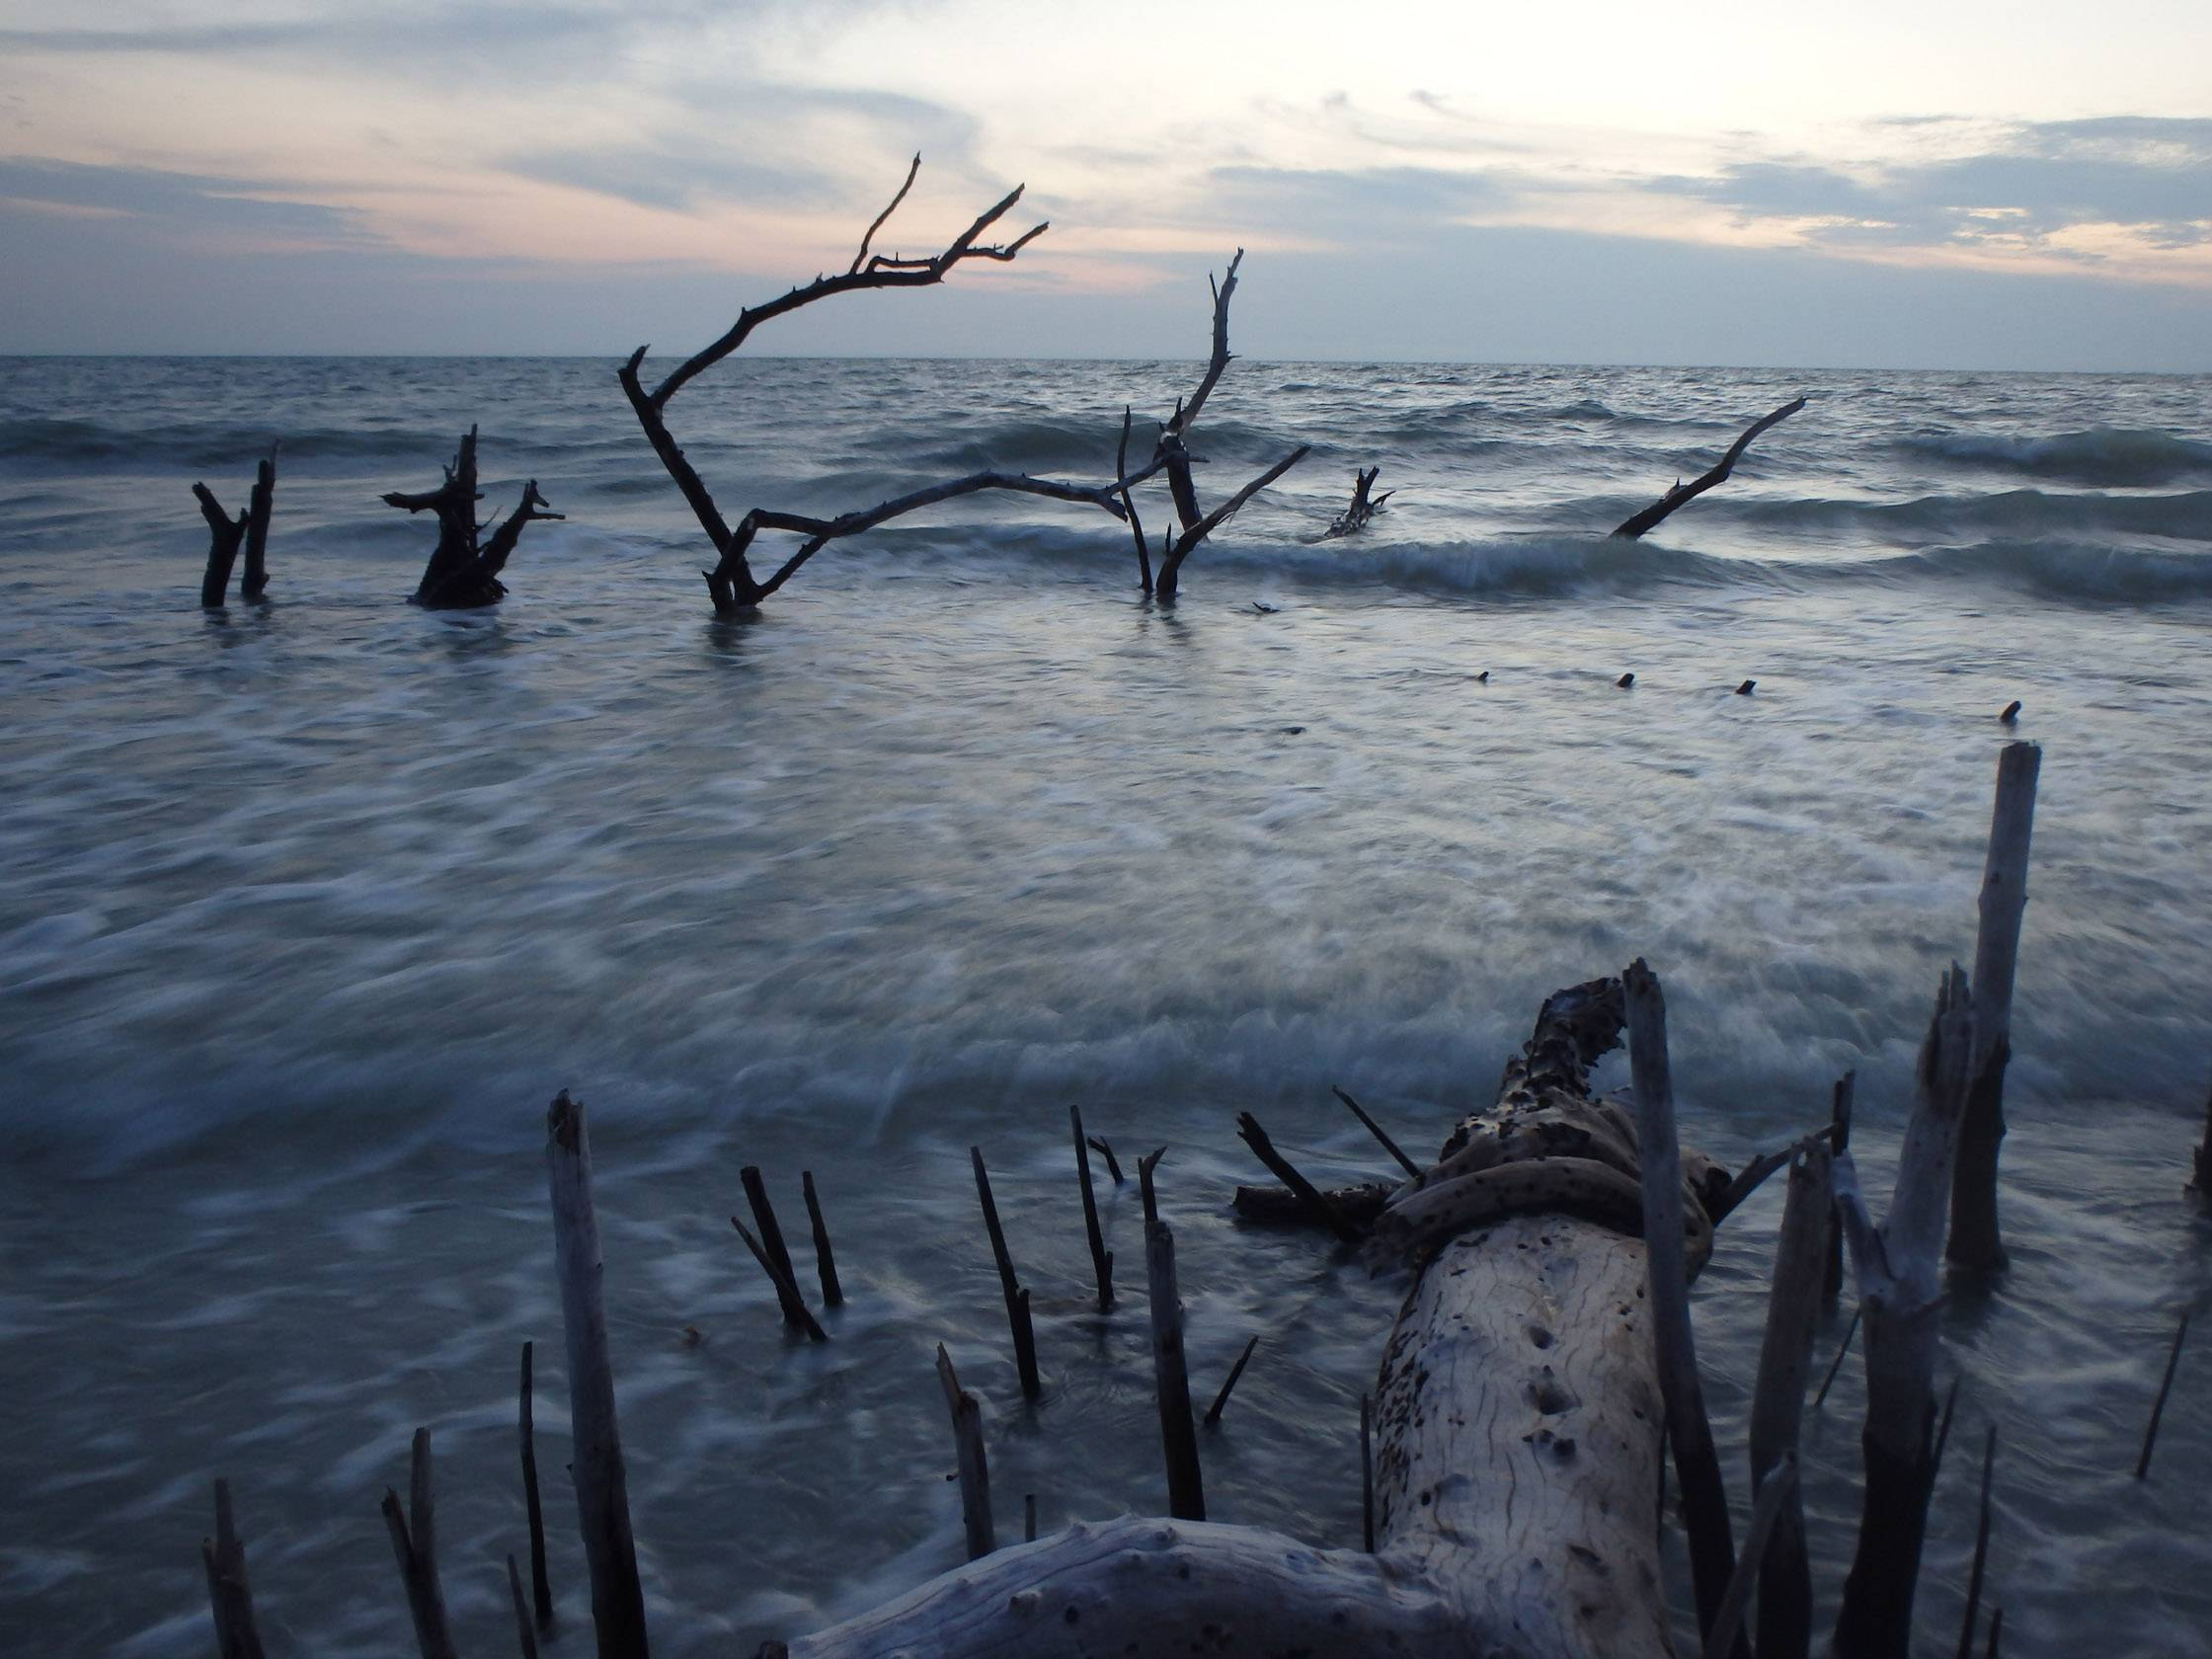 Waves create a ghostly atmosphere just before night sets in along Fort Meyers Beach during high tide at sunset.